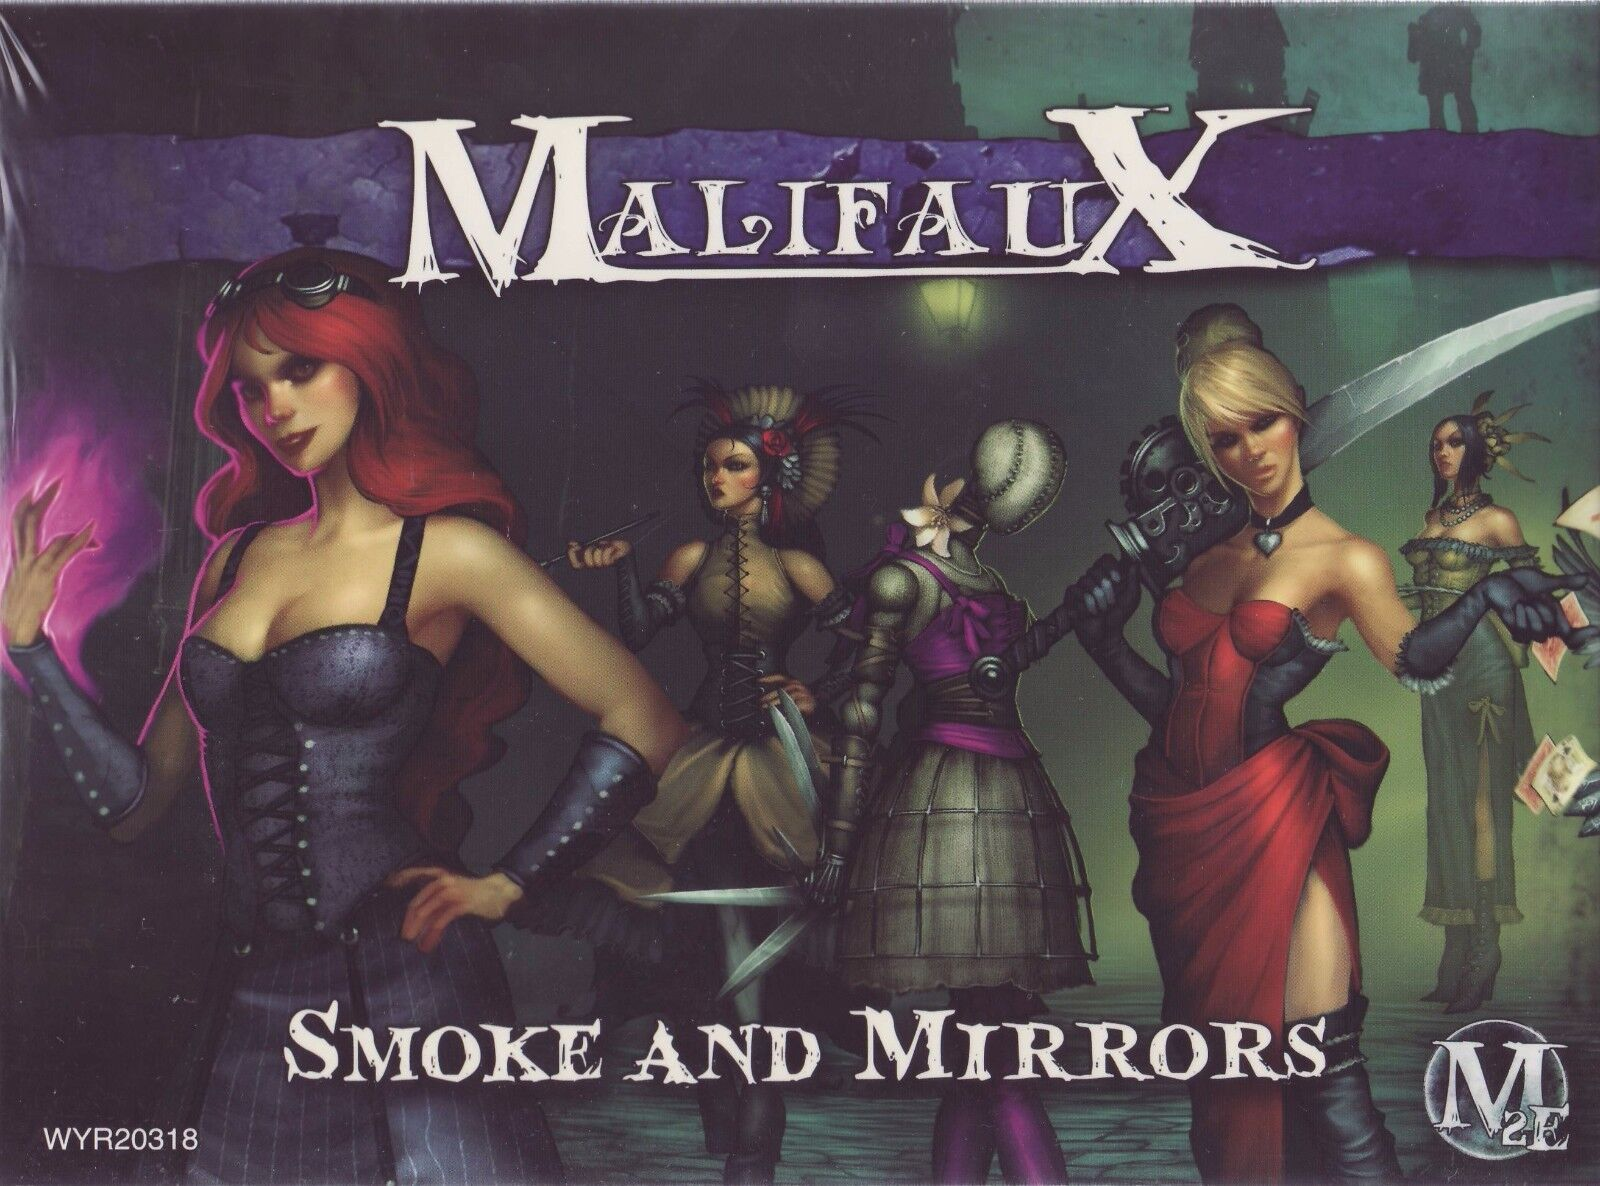 MALIFAUX Smoke and Mirrors WYR20318 nouveau FACTORY SEALED  M2E  au prix le plus bas